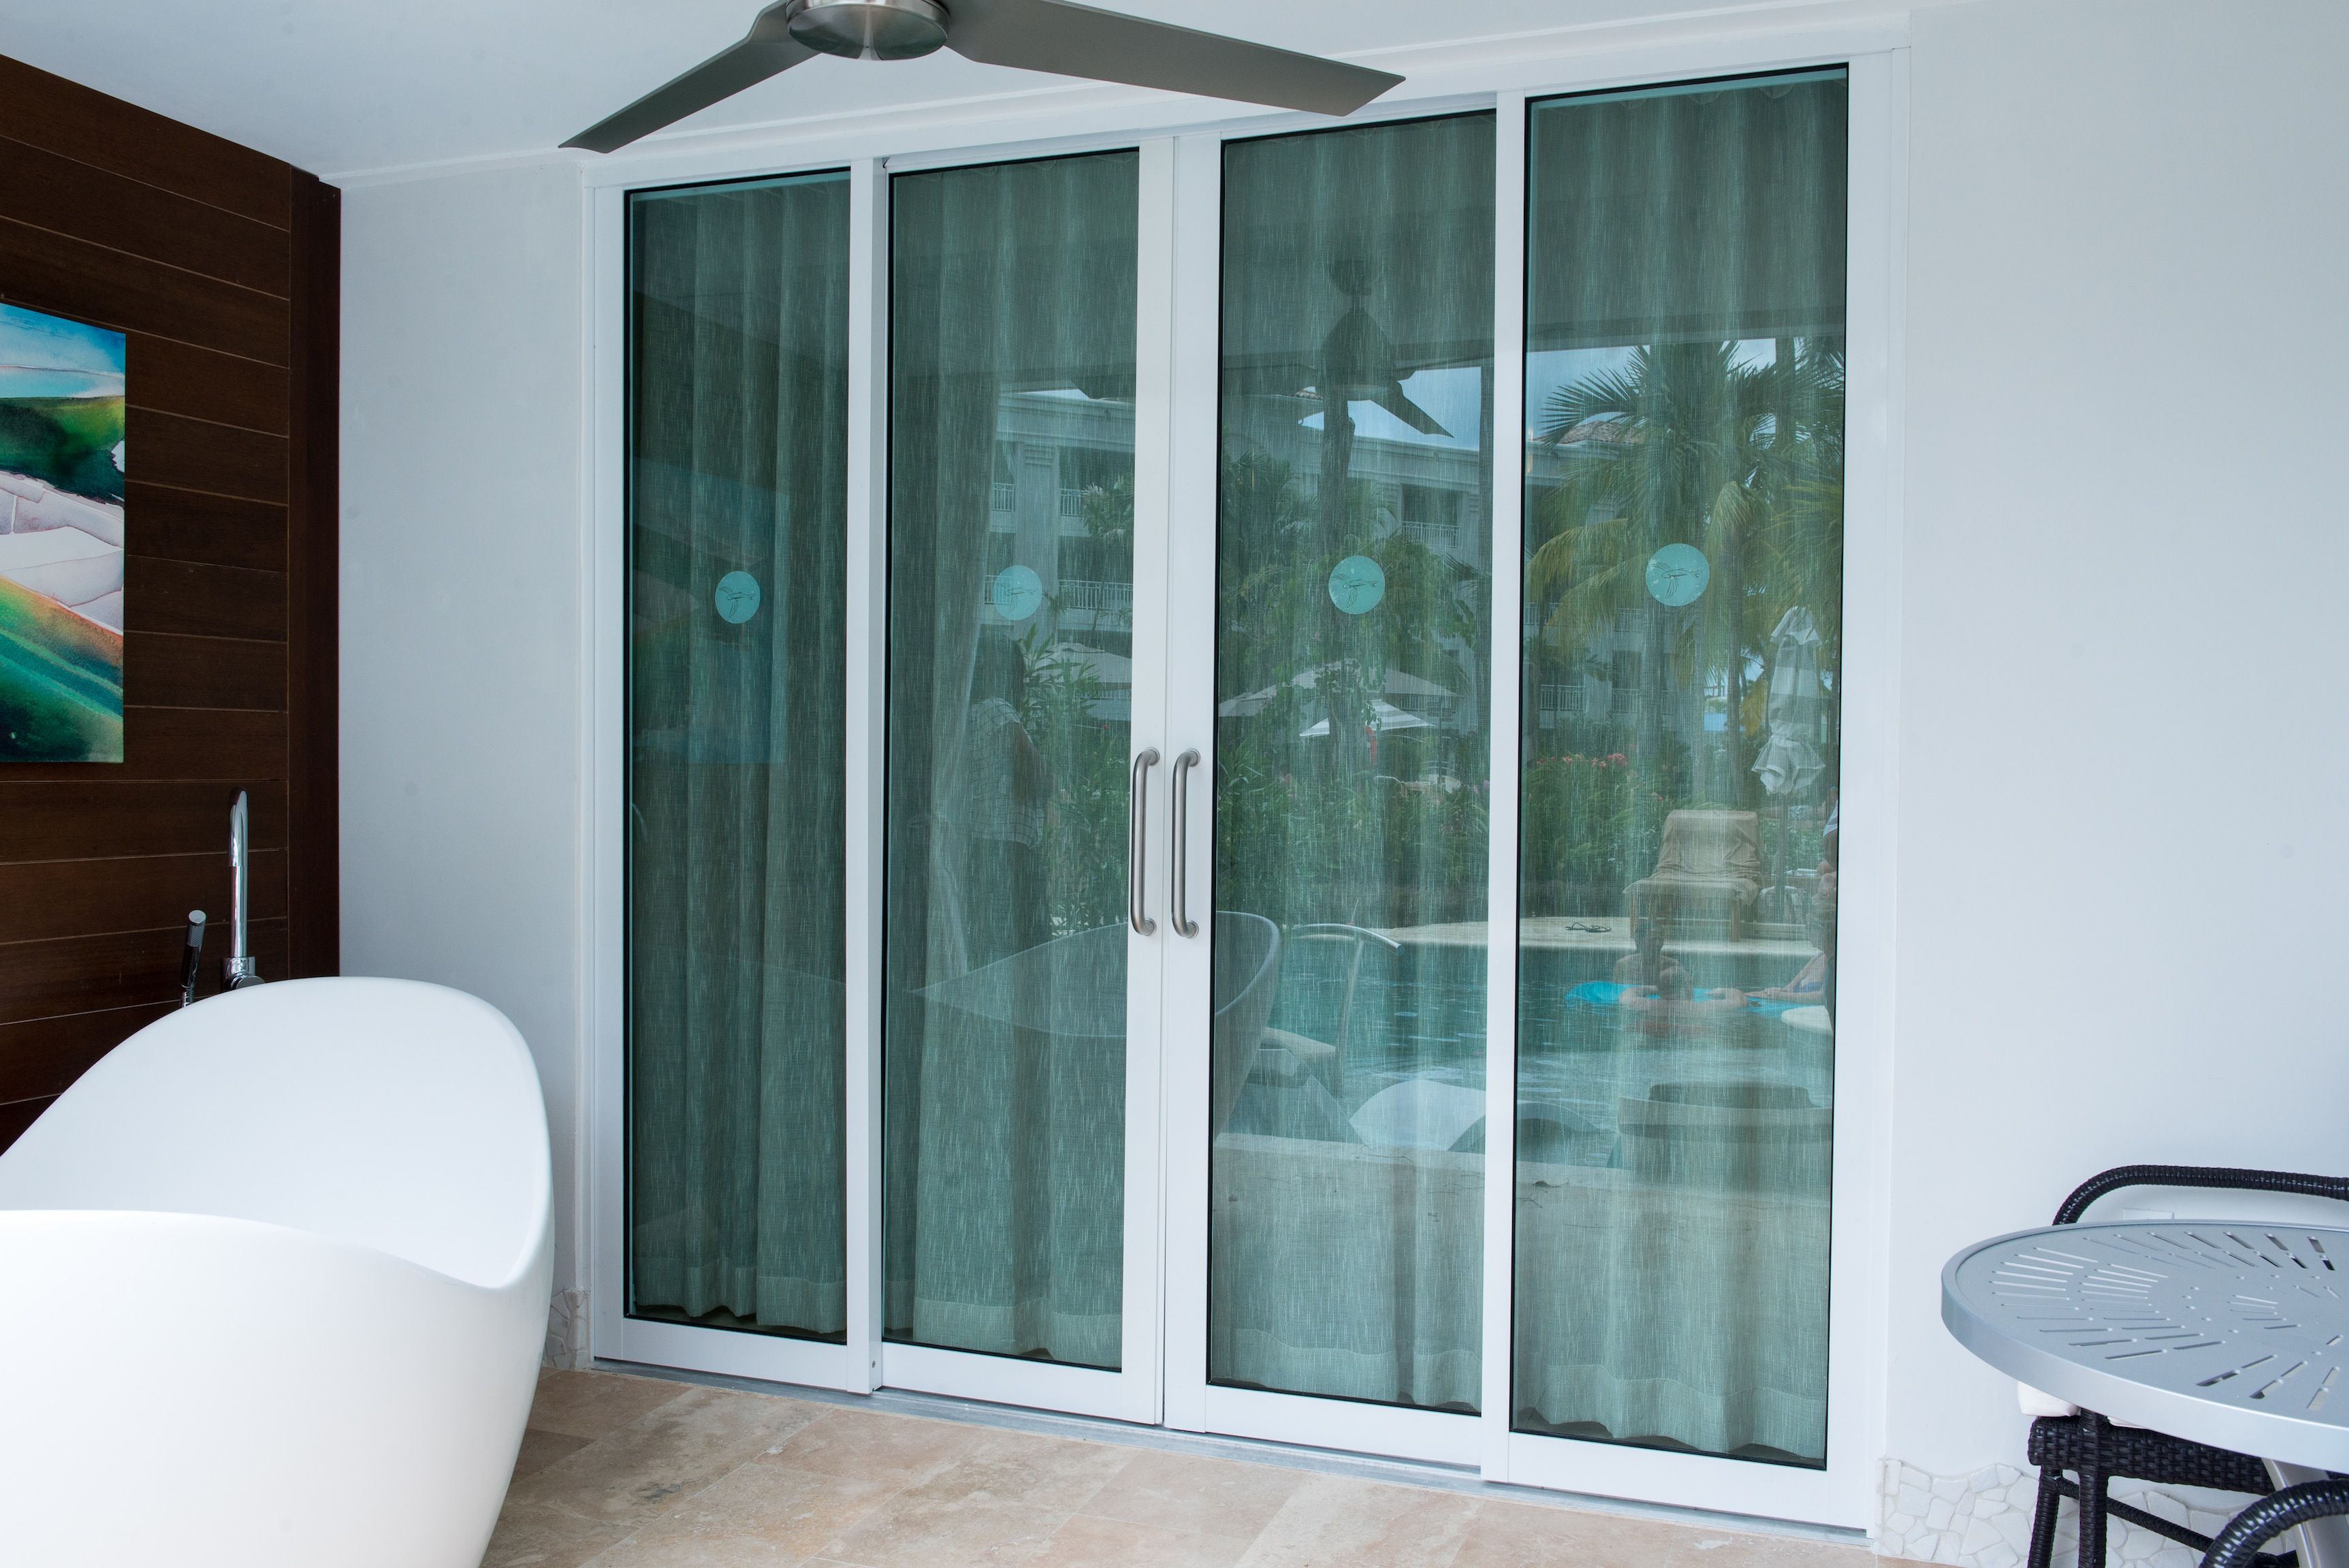 Doors oran ltd scott 4 aluminum sliding doors eventelaan Image collections